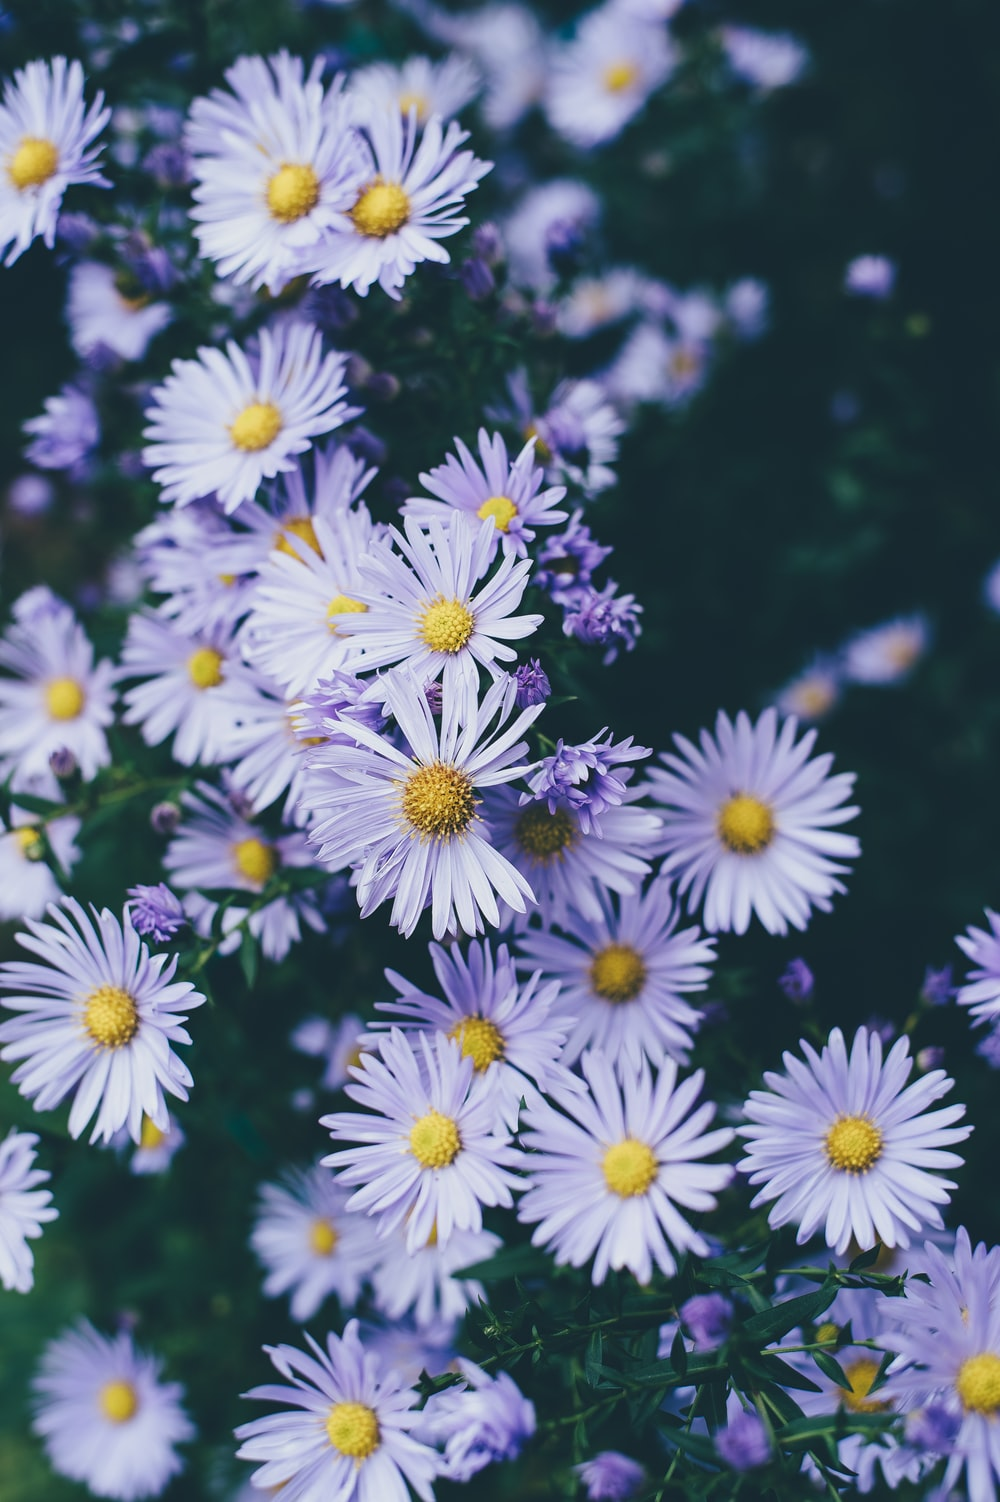 White Daisy Bed Photo By Annie Spratt Anniespratt On Unsplash